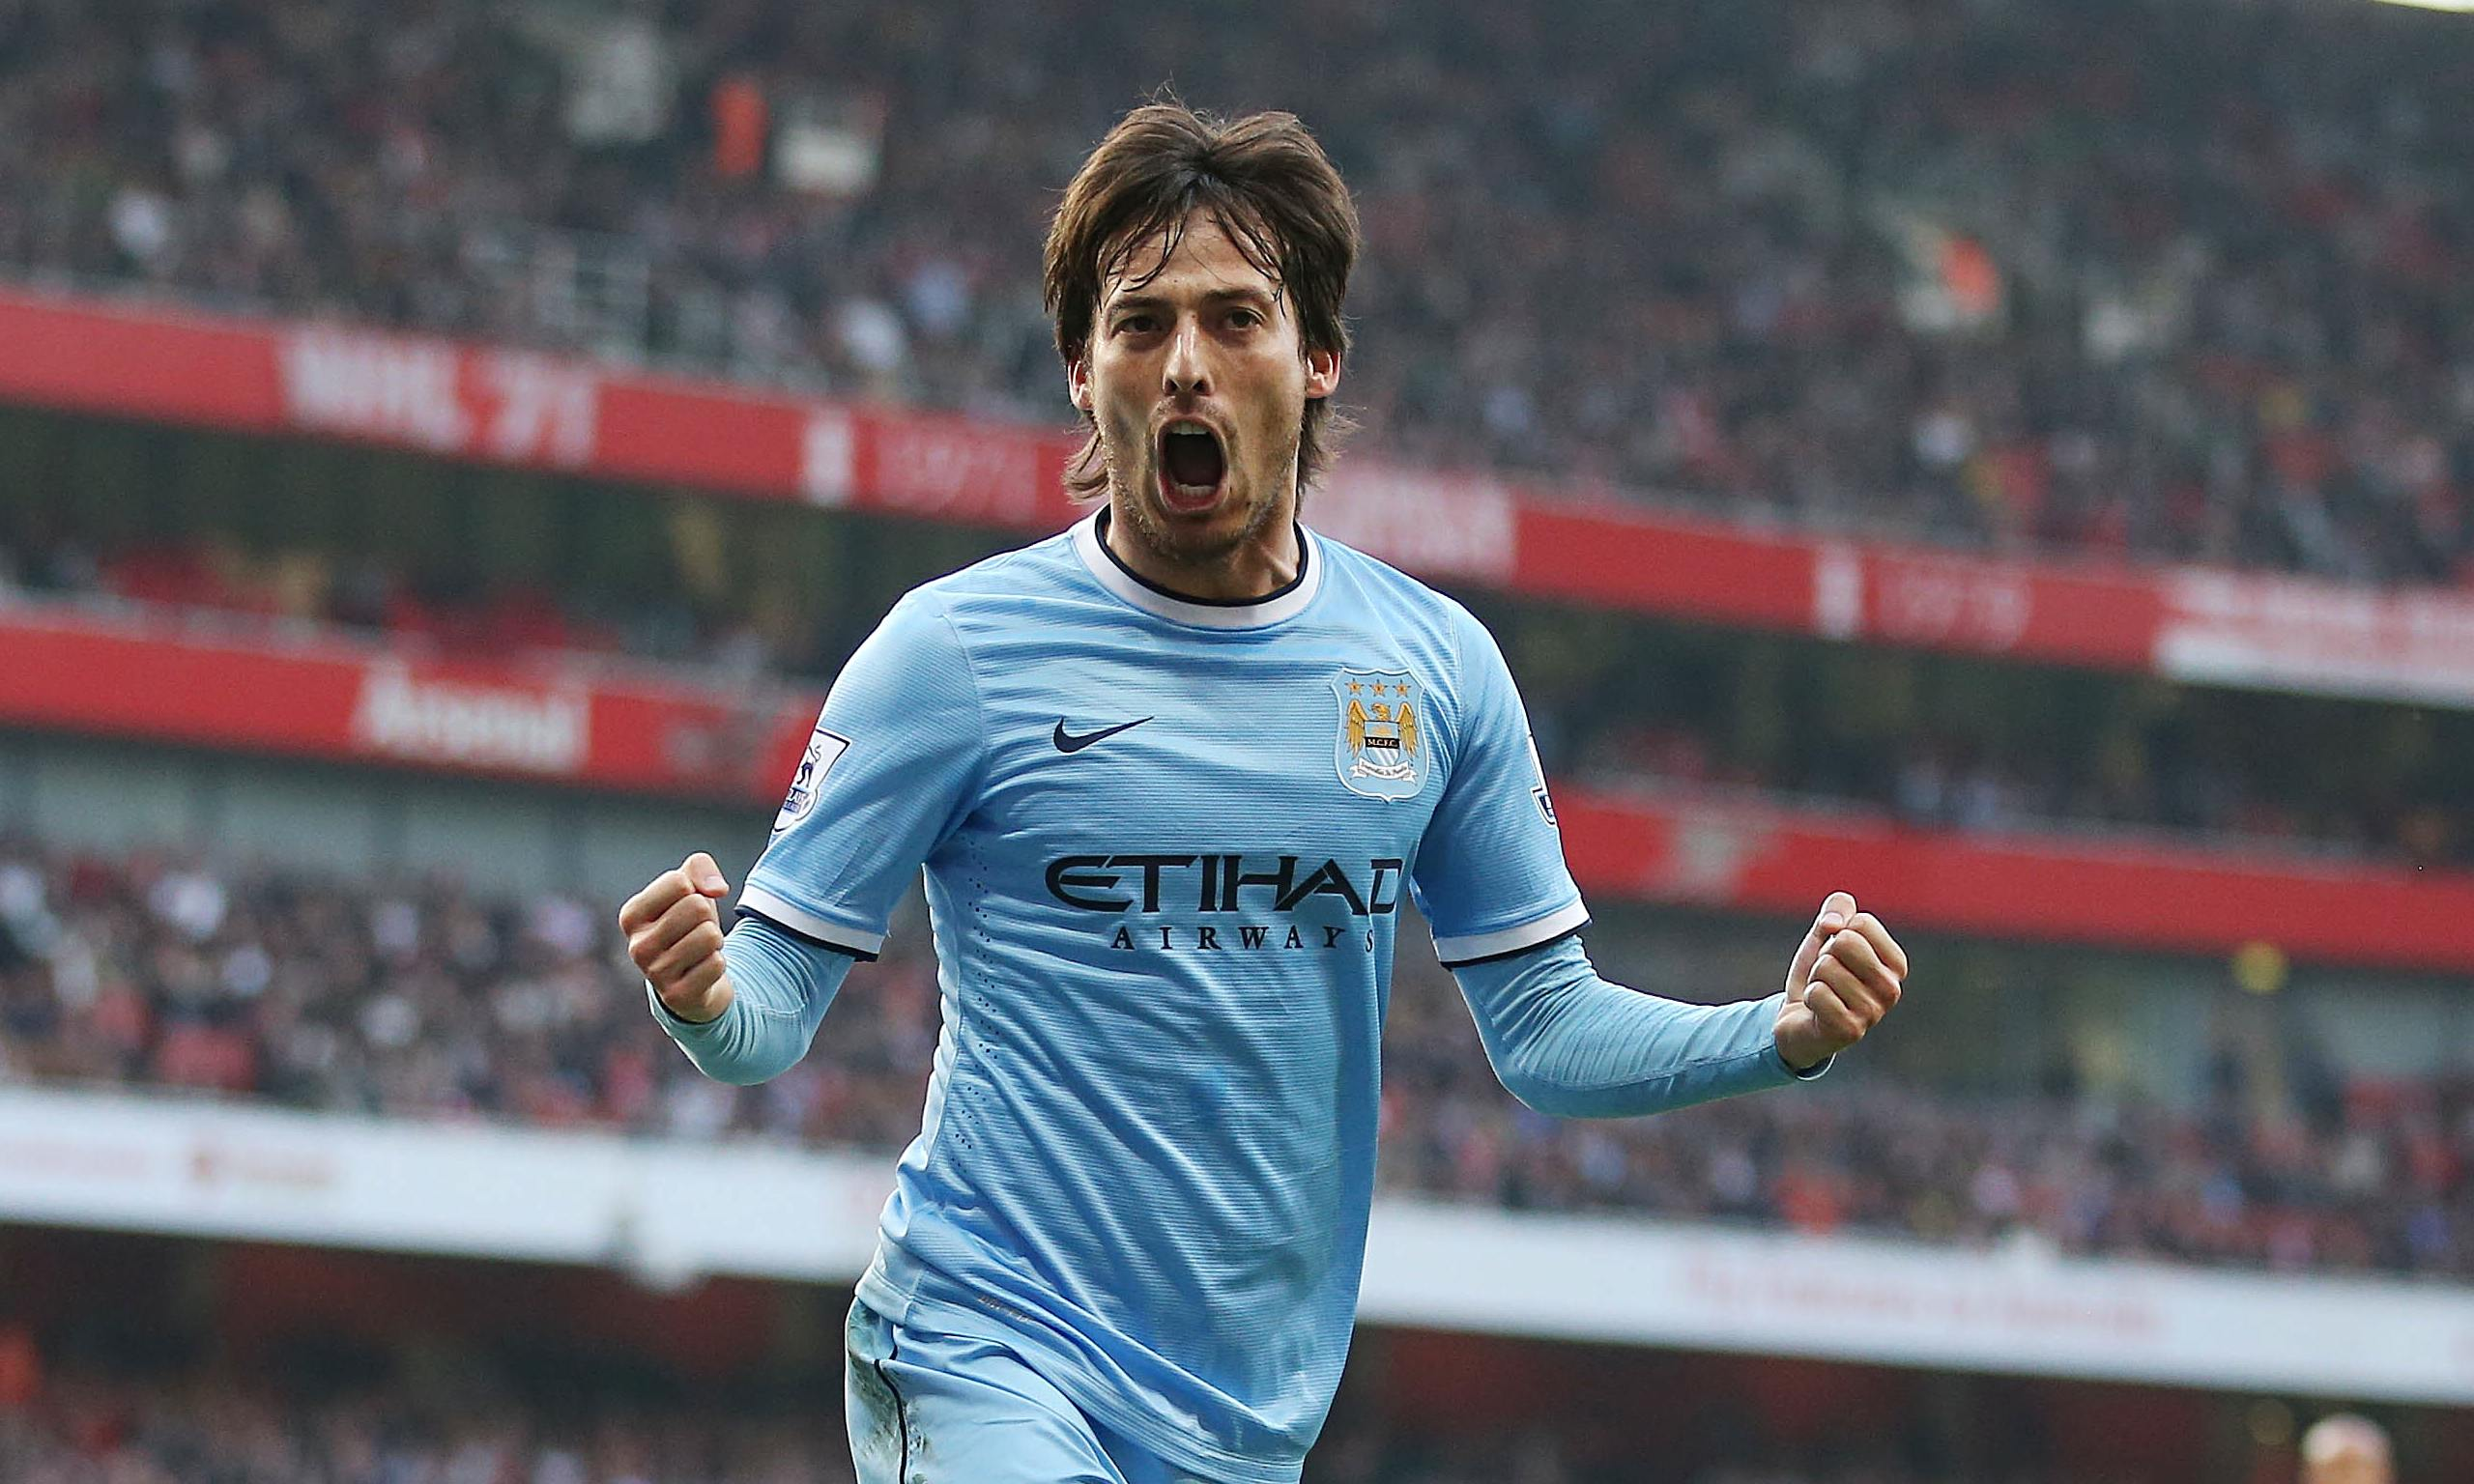 David Silva Backgrounds on Wallpapers Vista